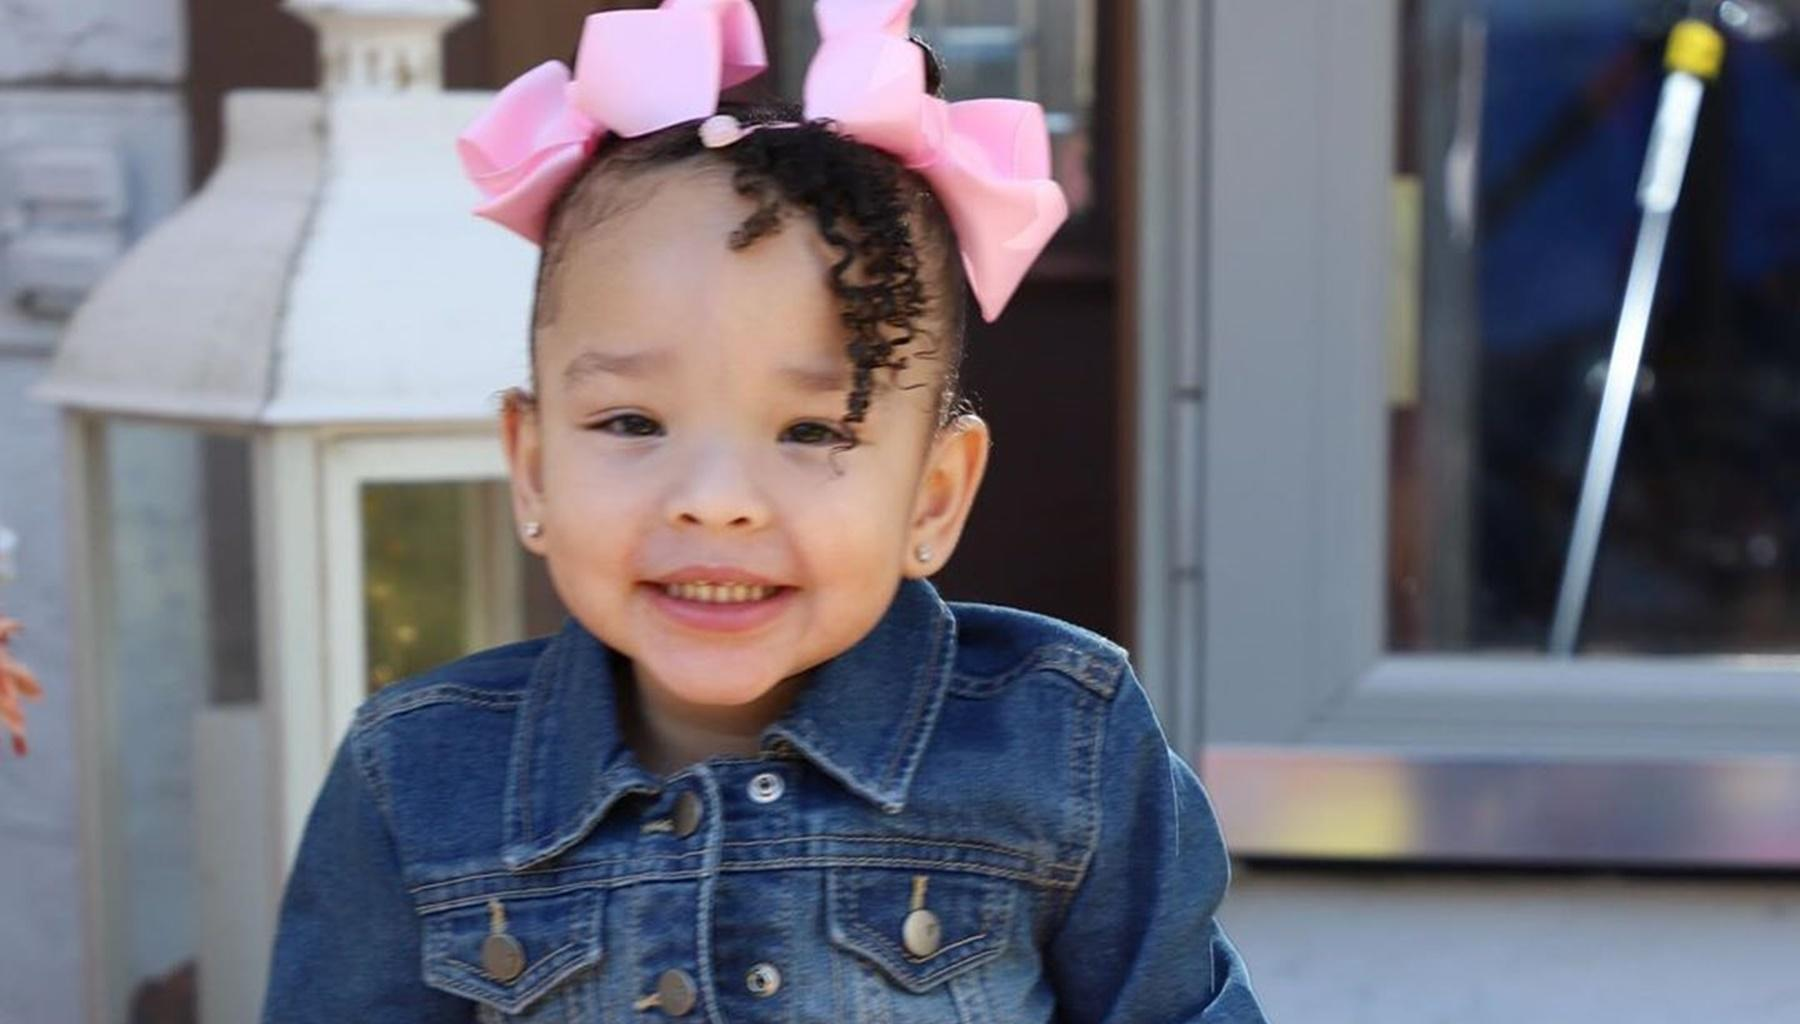 Tiny Harris Makes Fans' Day With A New Birthday Video From Heiress Harris' Party